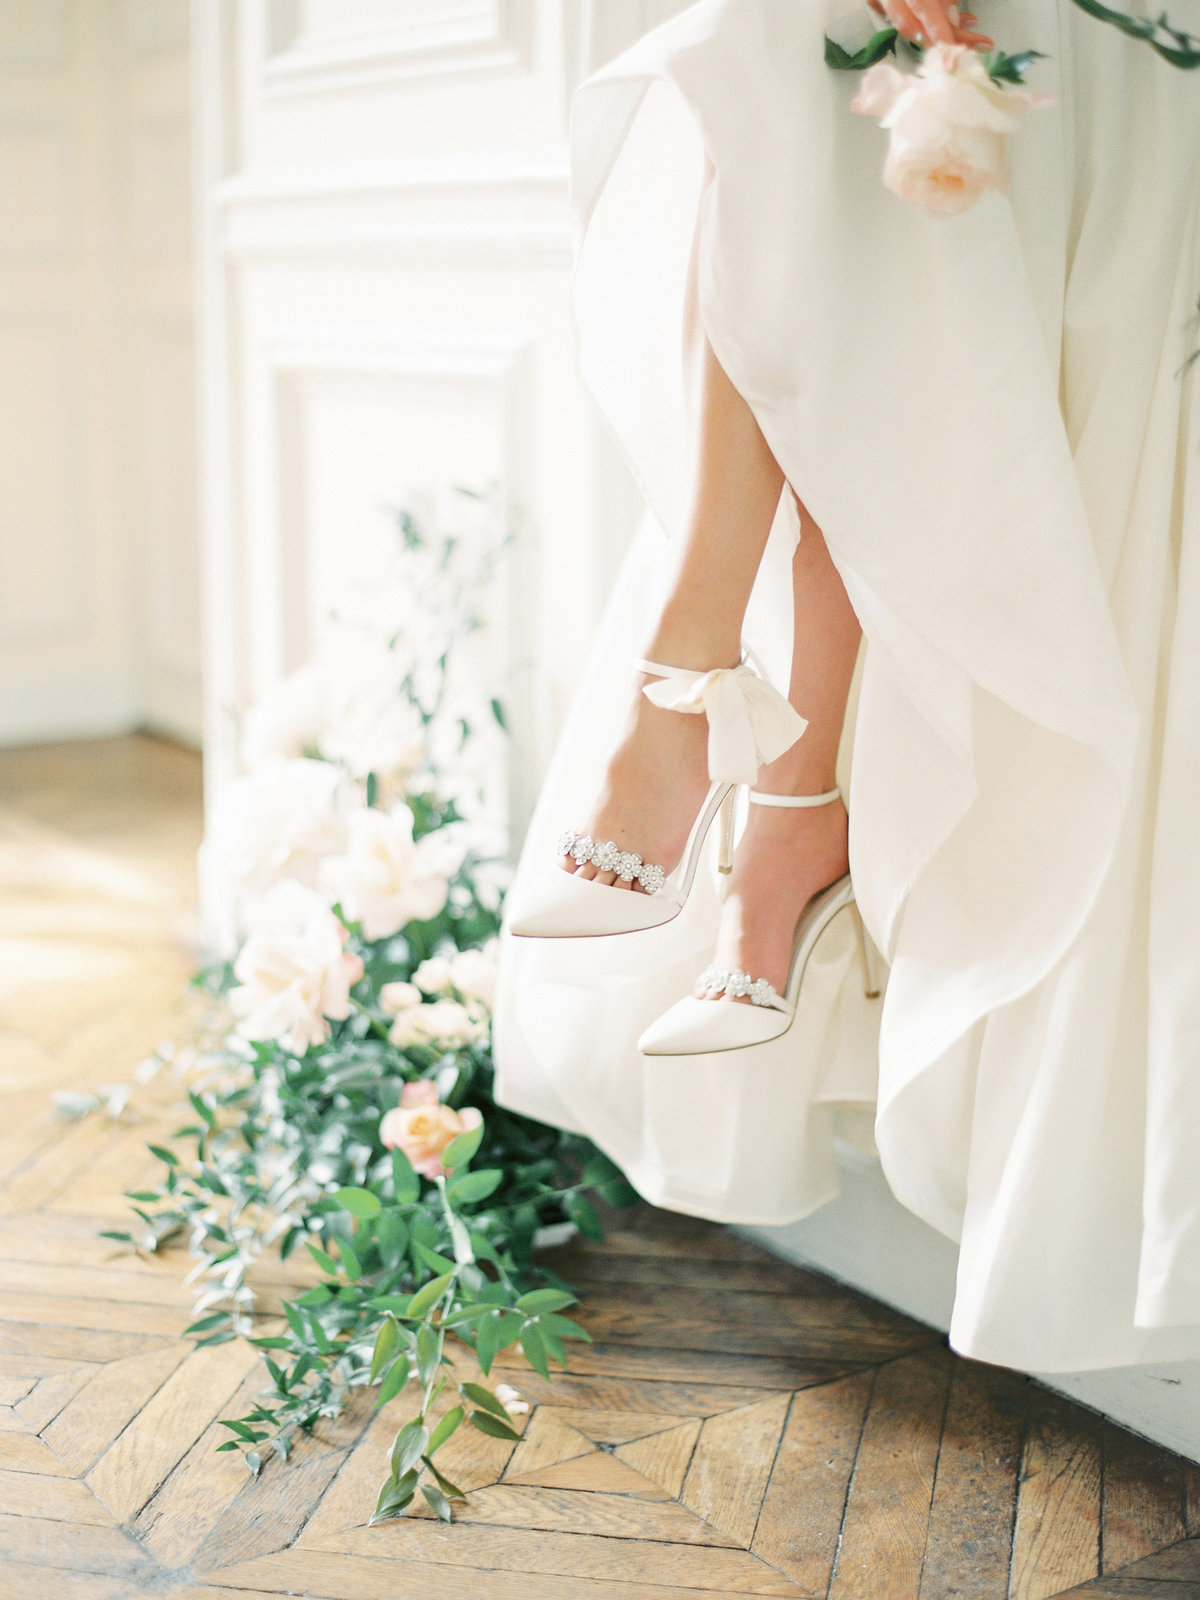 Luxurious french chateau wedding amelia soegijono0024